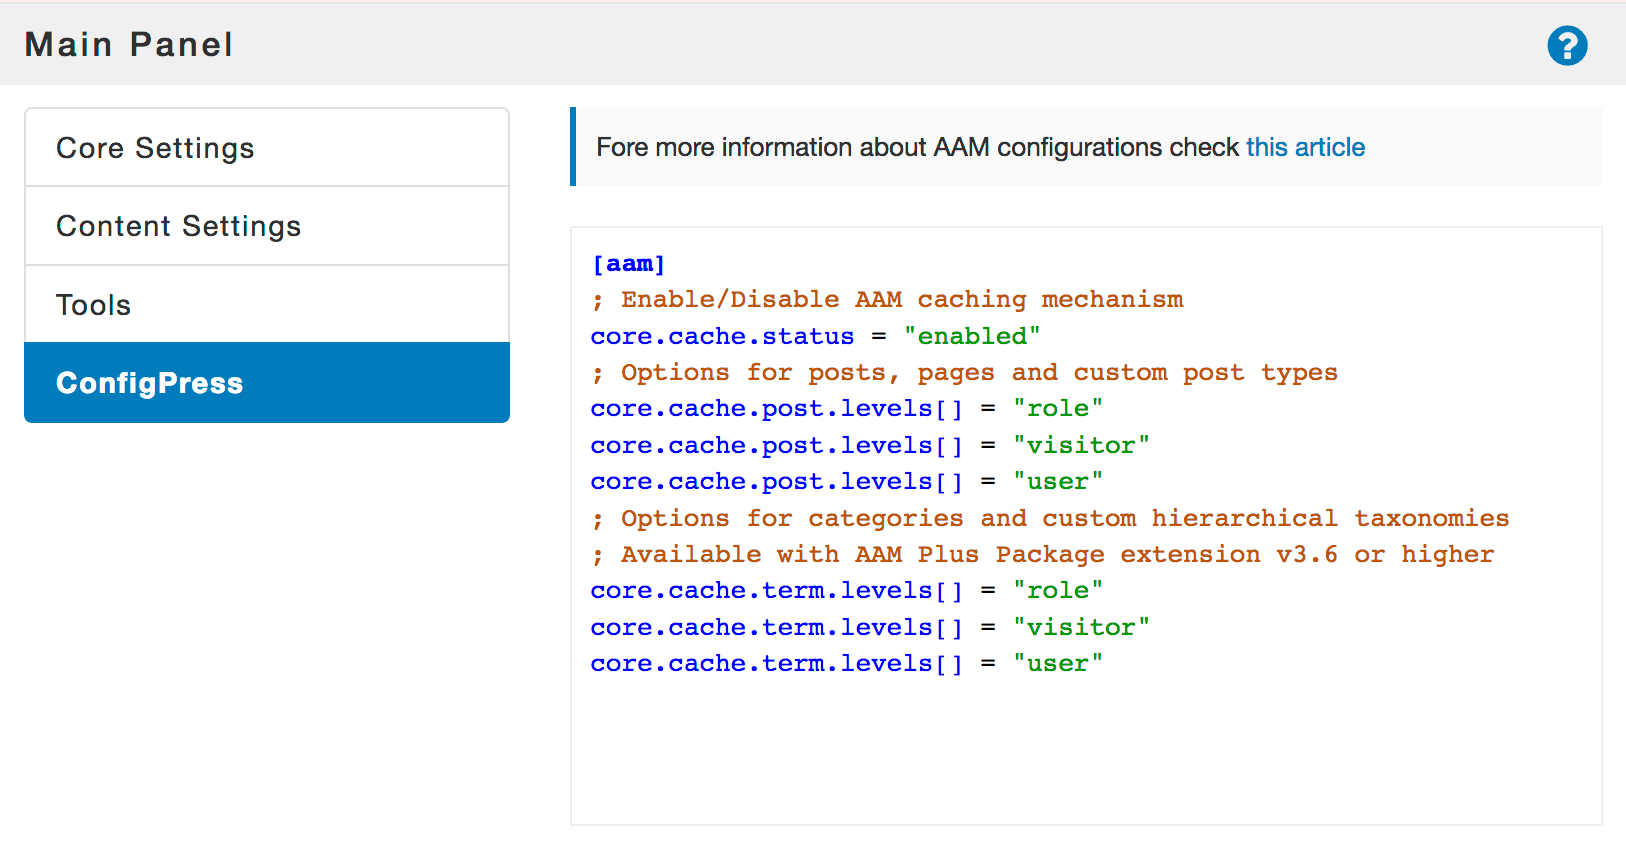 AAM Cache Options